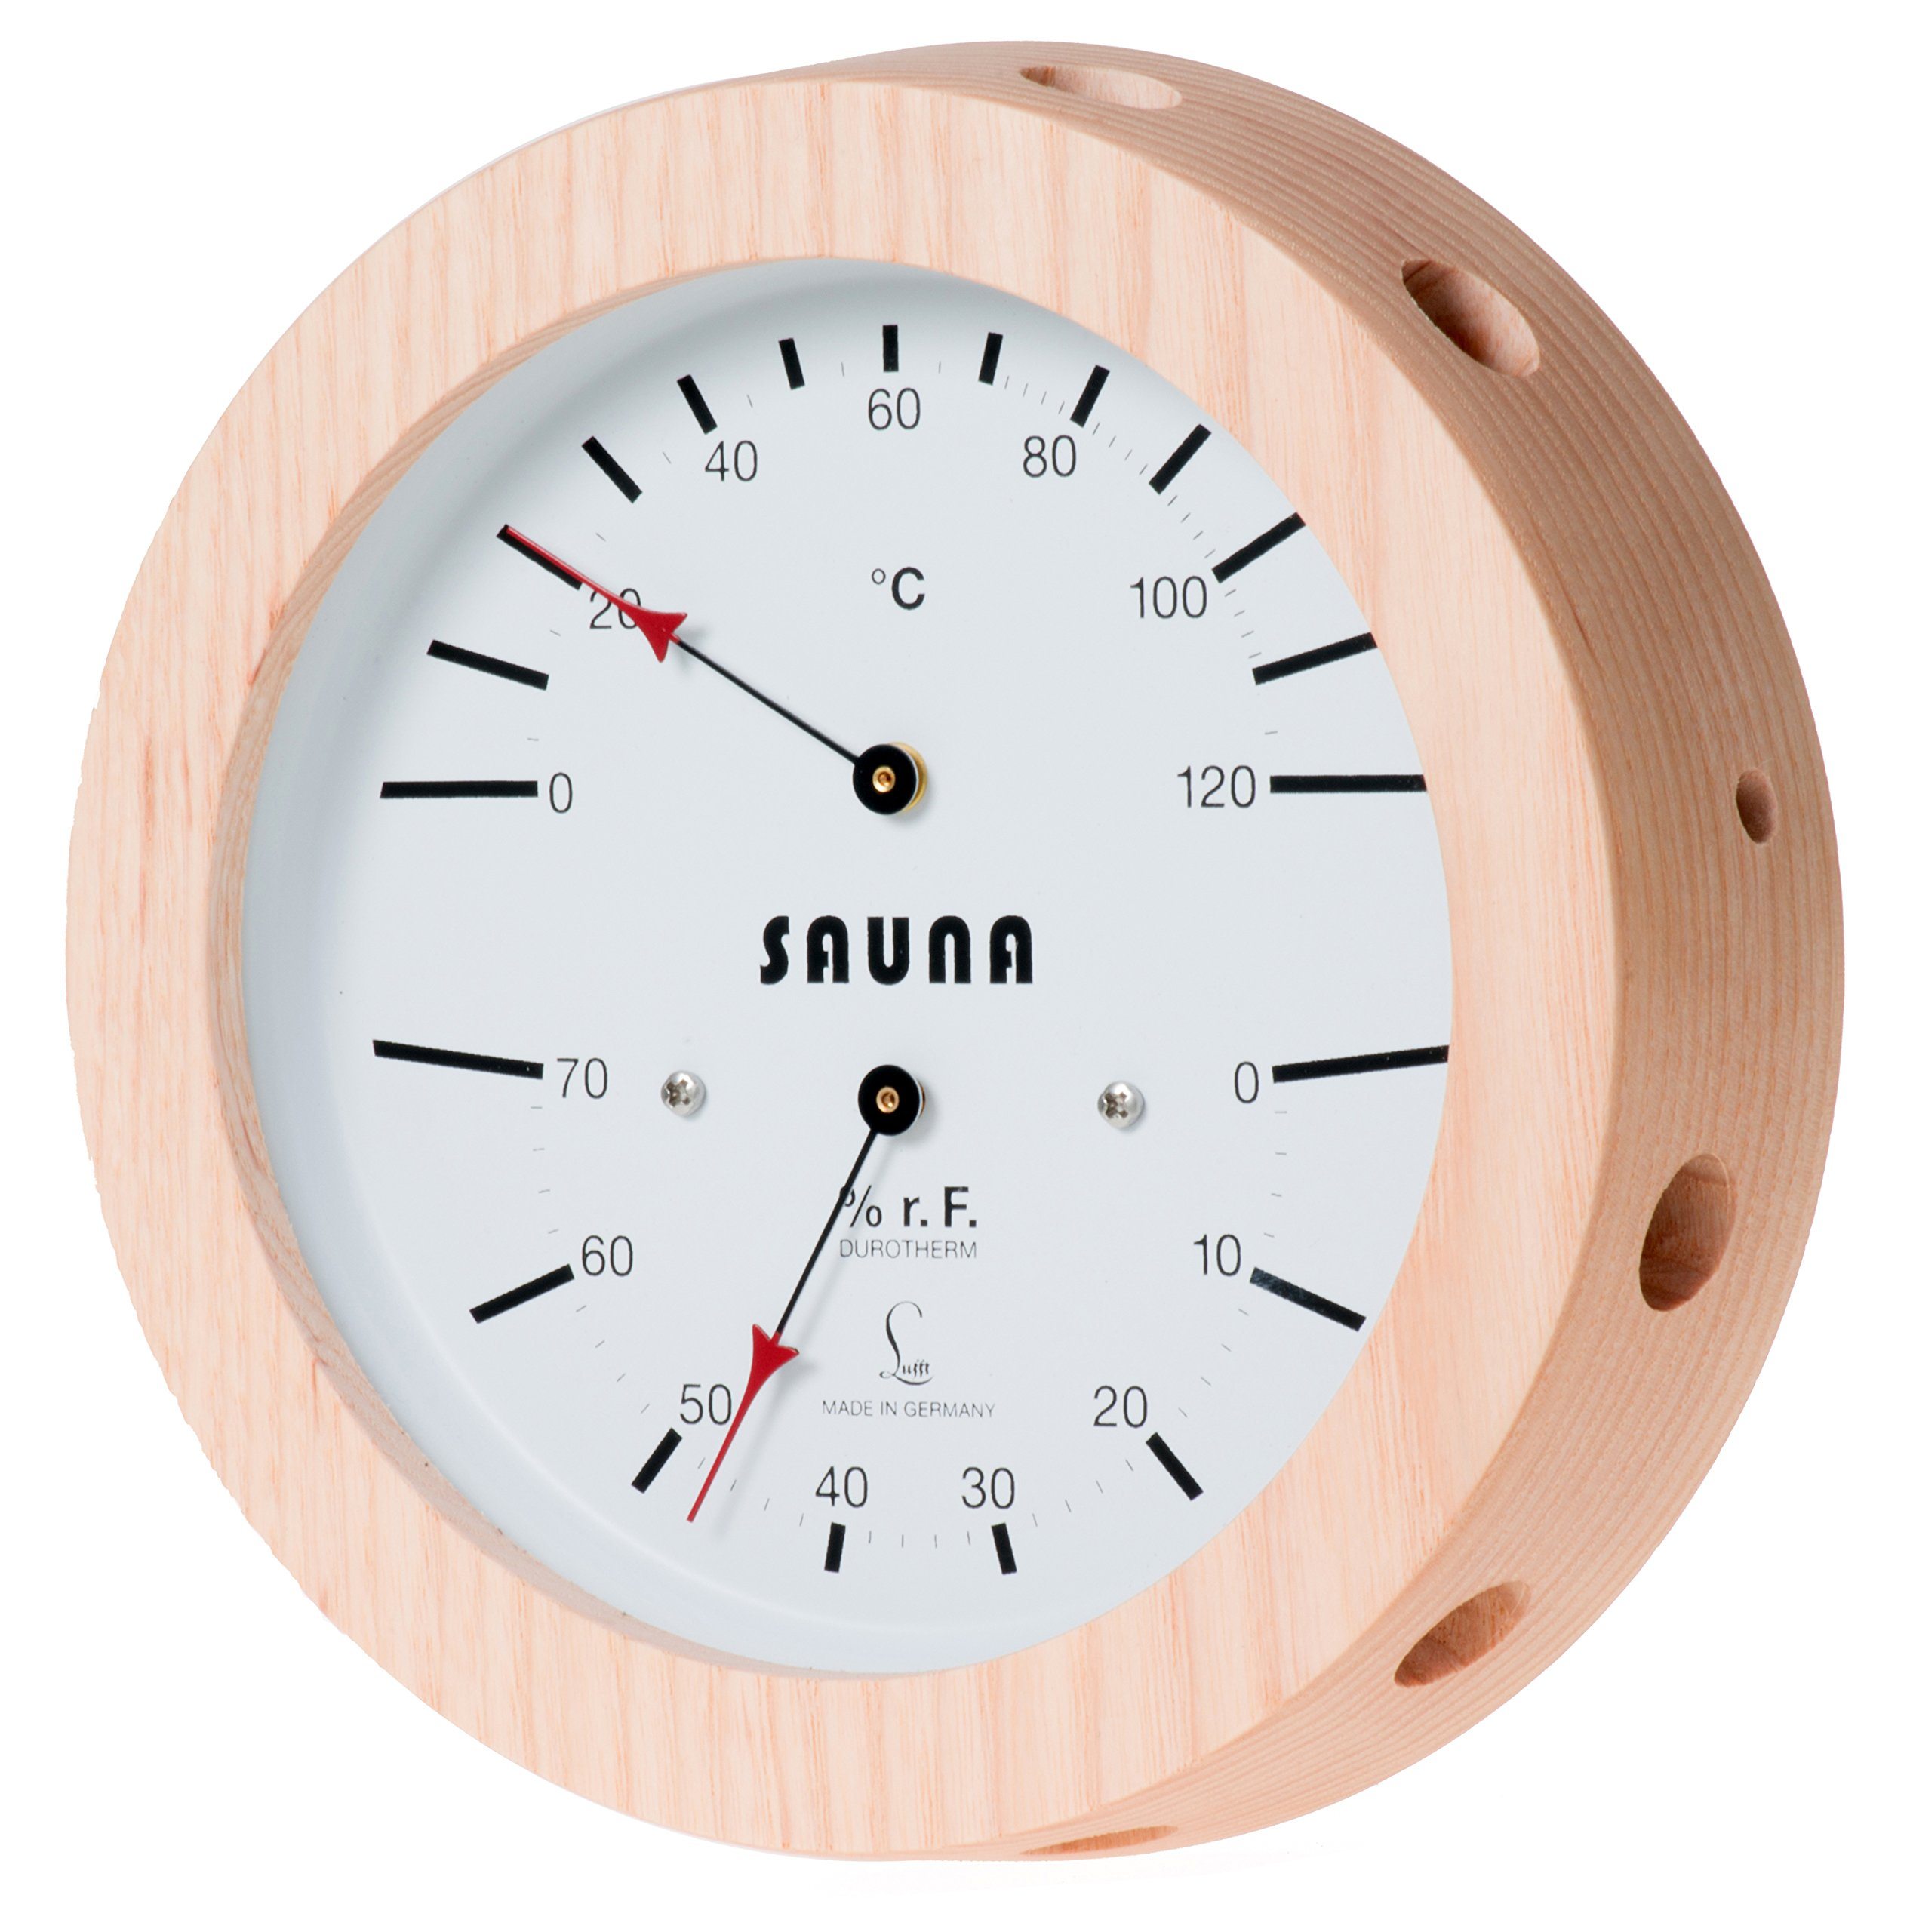 LUFFT Sauna Thermometer + Hygrometer 6.3'', Natural Wood, 5076.00 (°C version)